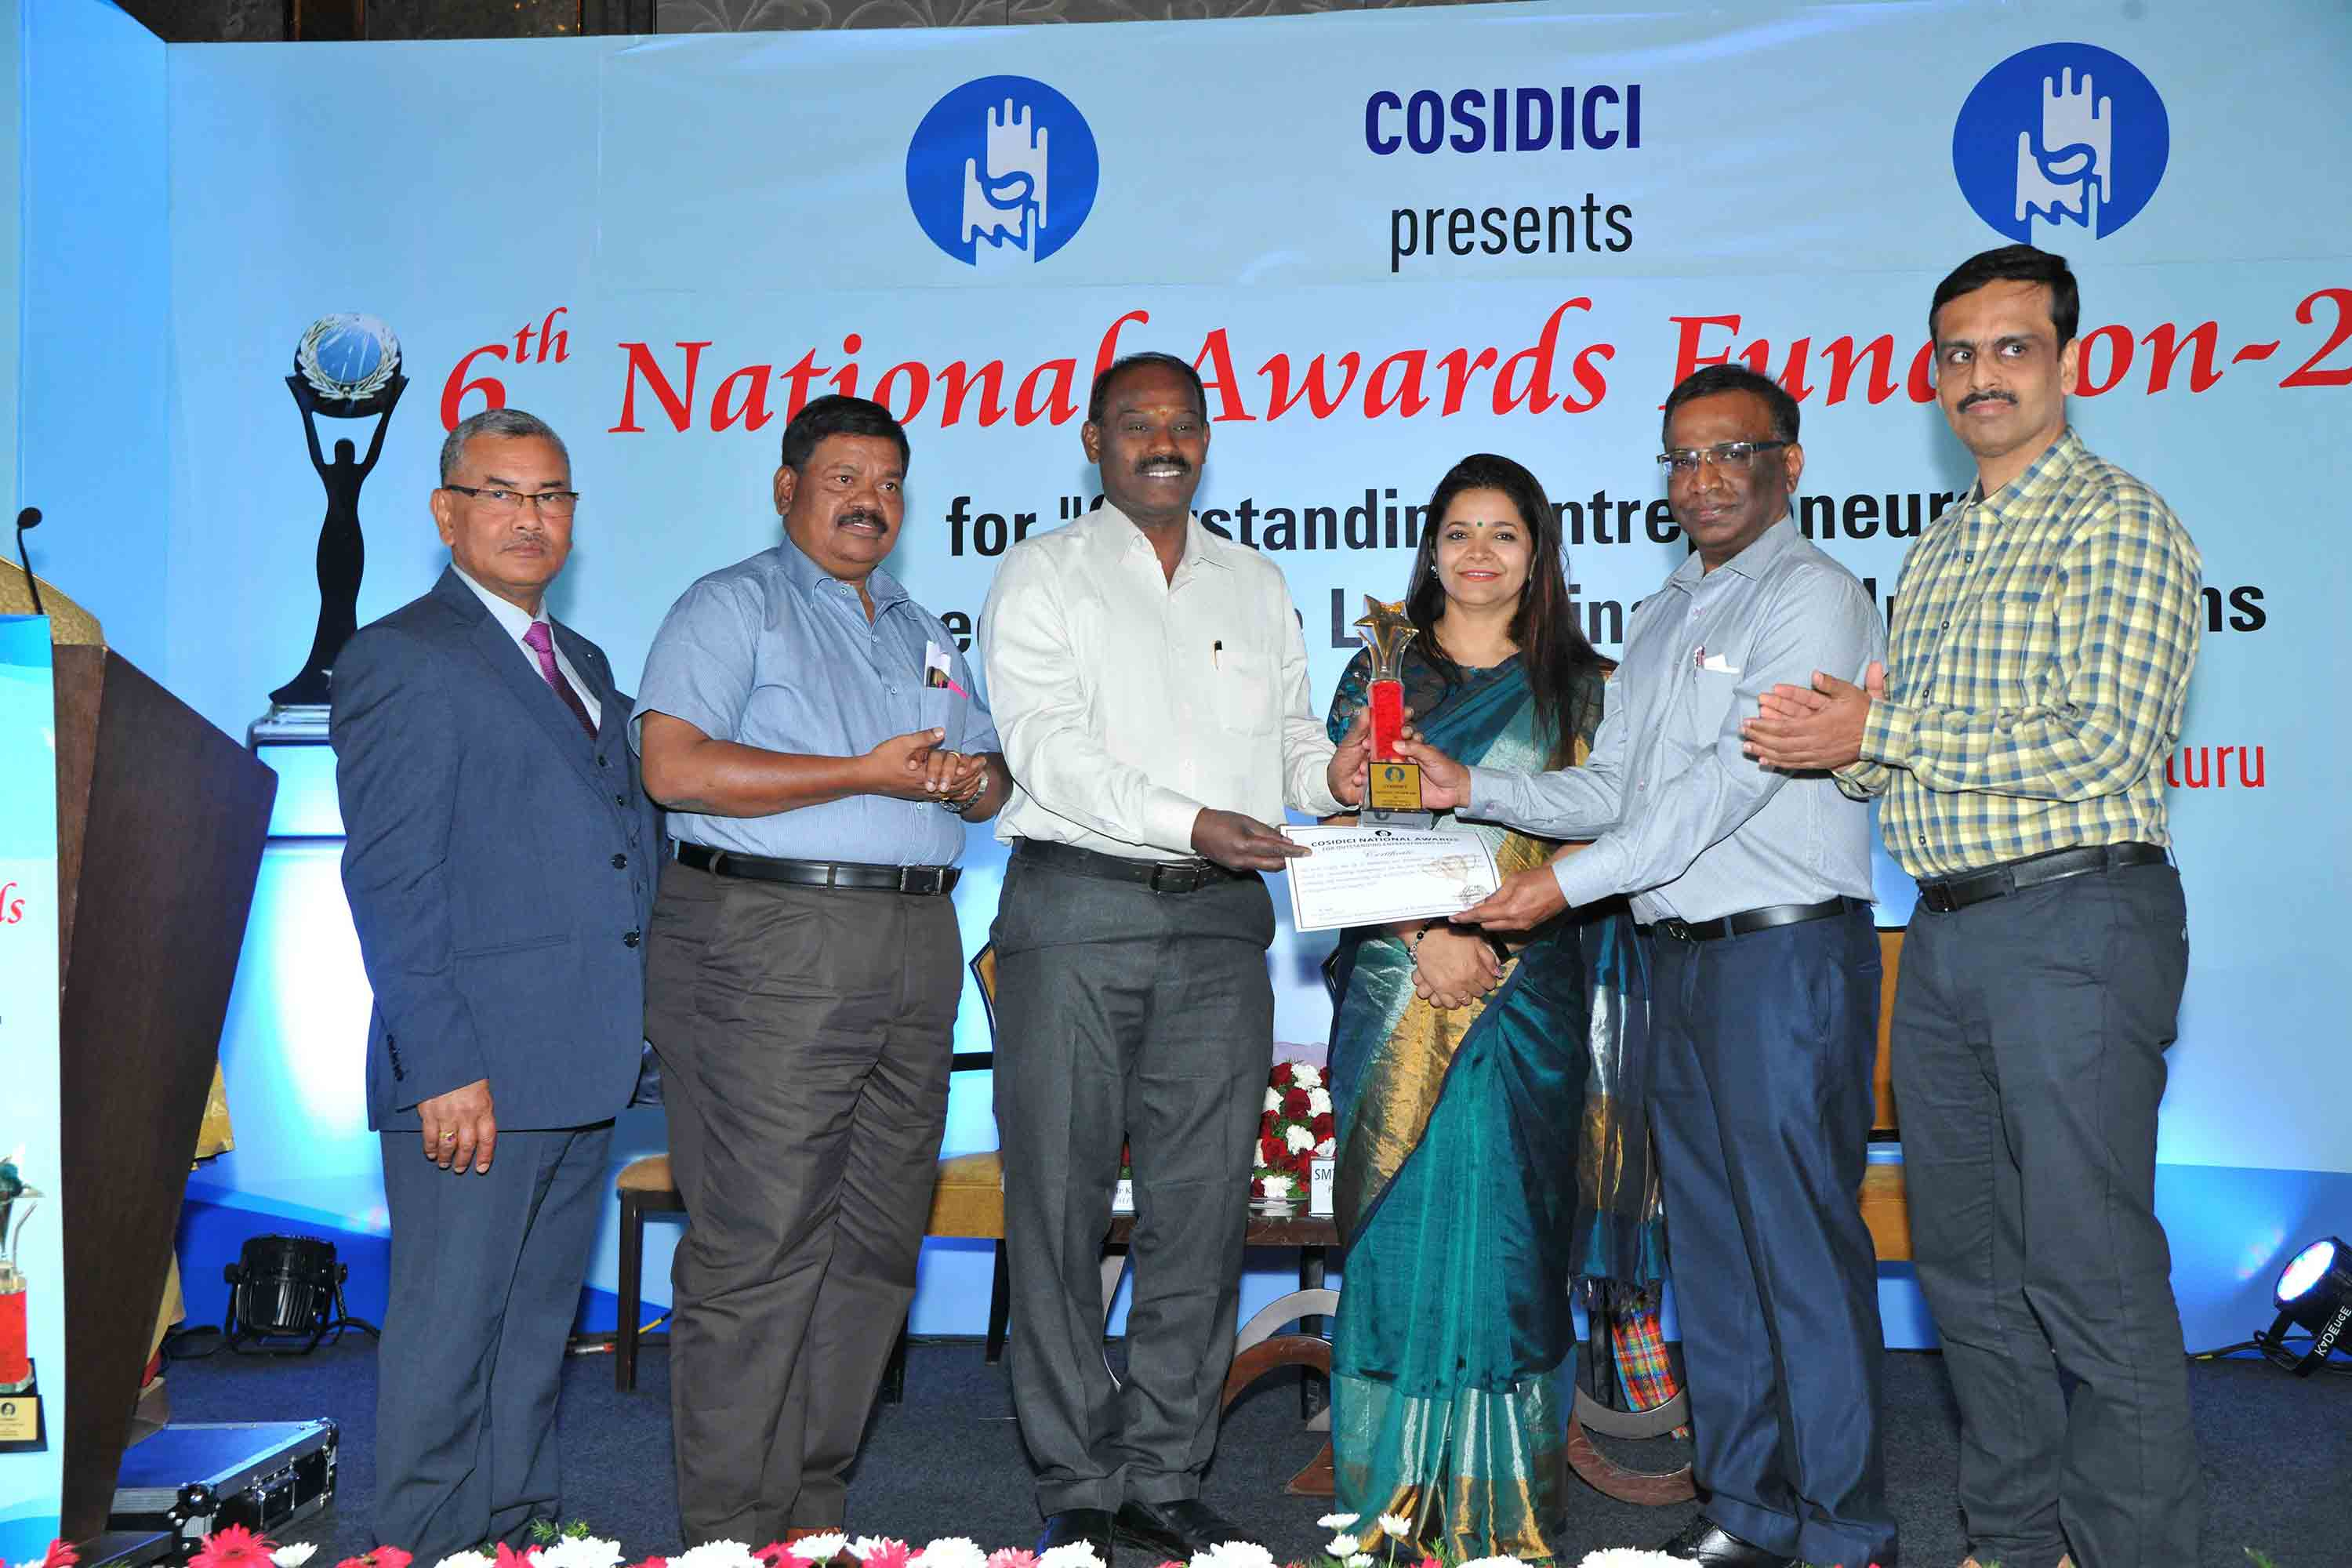 - Promoter of Numaan Industries, Hosur, receiving BEST Entrepreneur Award from COSIDICI during its National Awards 2019 Program held at Bengaluru